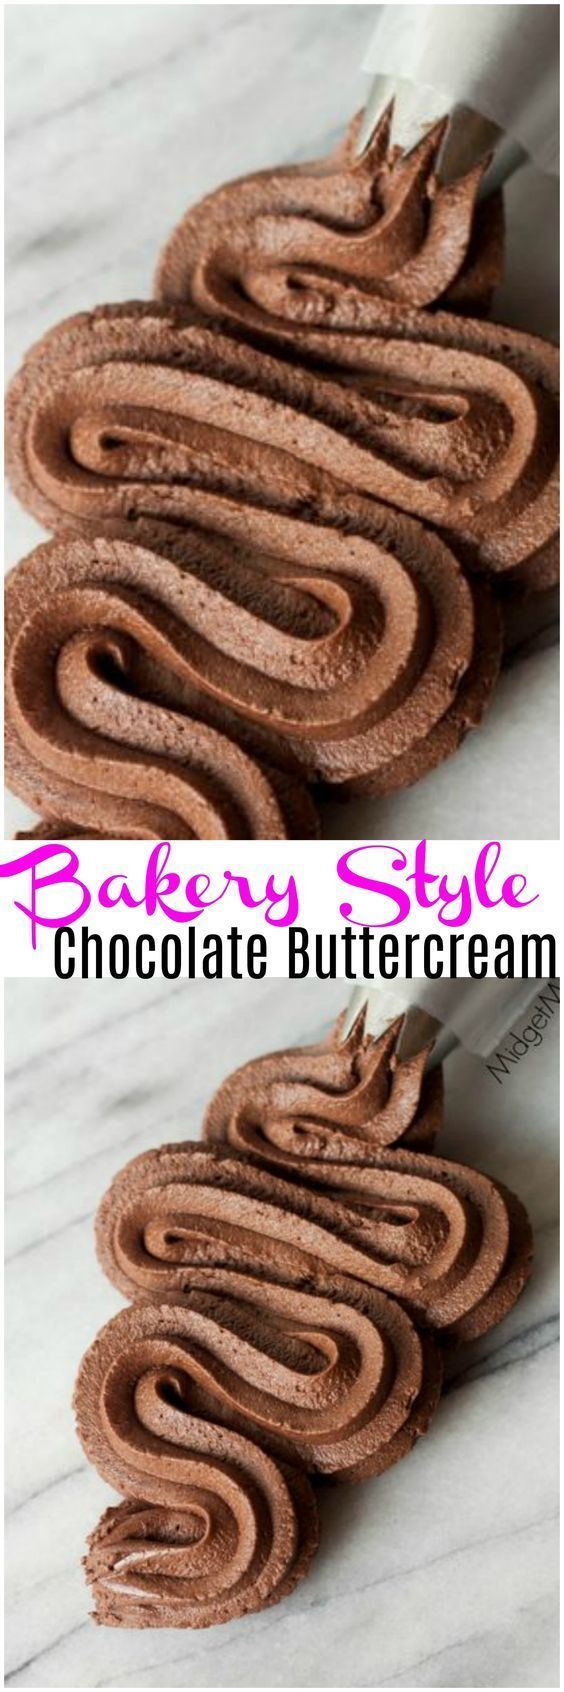 Bakery Style Chocolate Buttercream Frosting. Chocolate frosting just like you get at a bakery and on the cakes bakeries make.